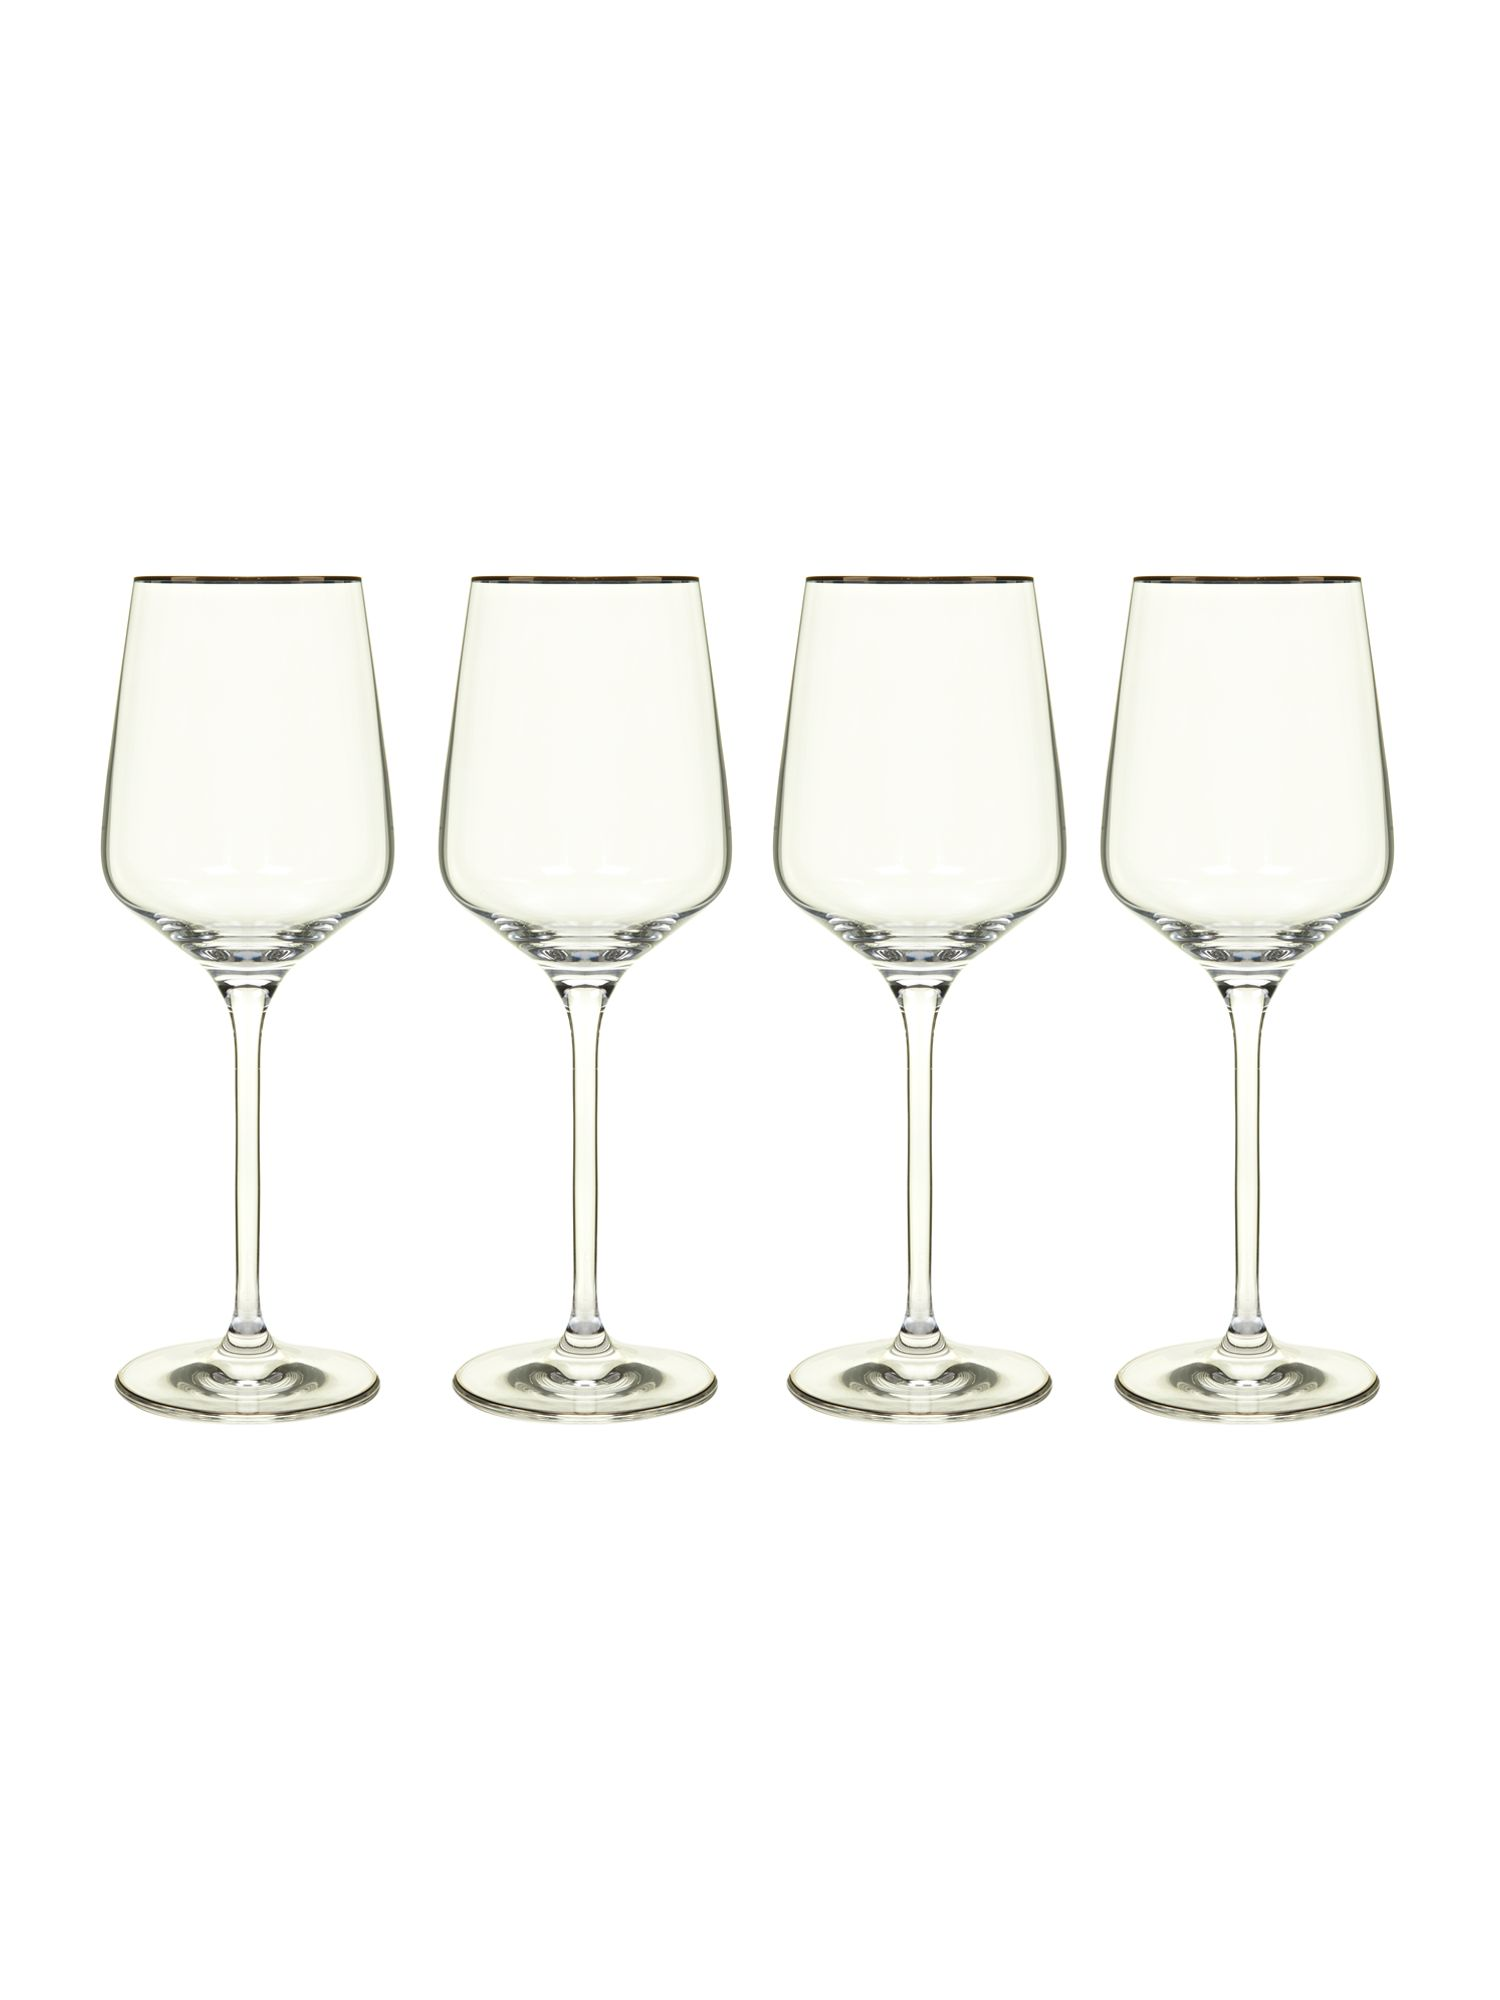 Platinum band red wine set of 4